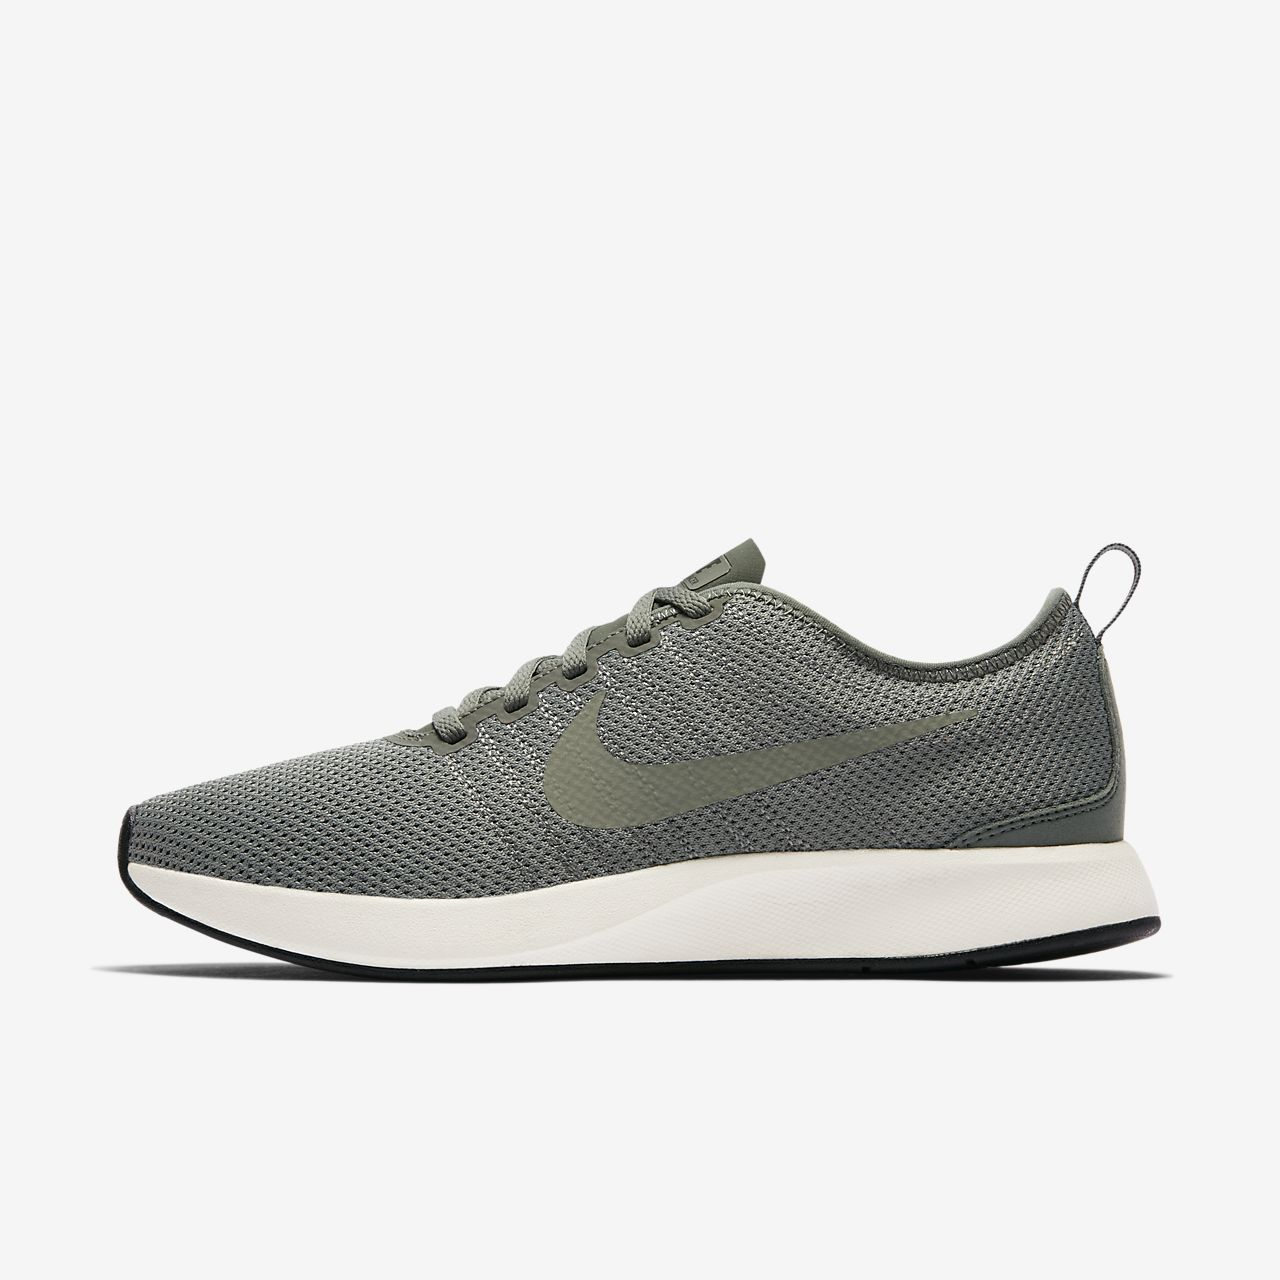 9fdc1074c8827 womens nike dualtone racer casual shoes